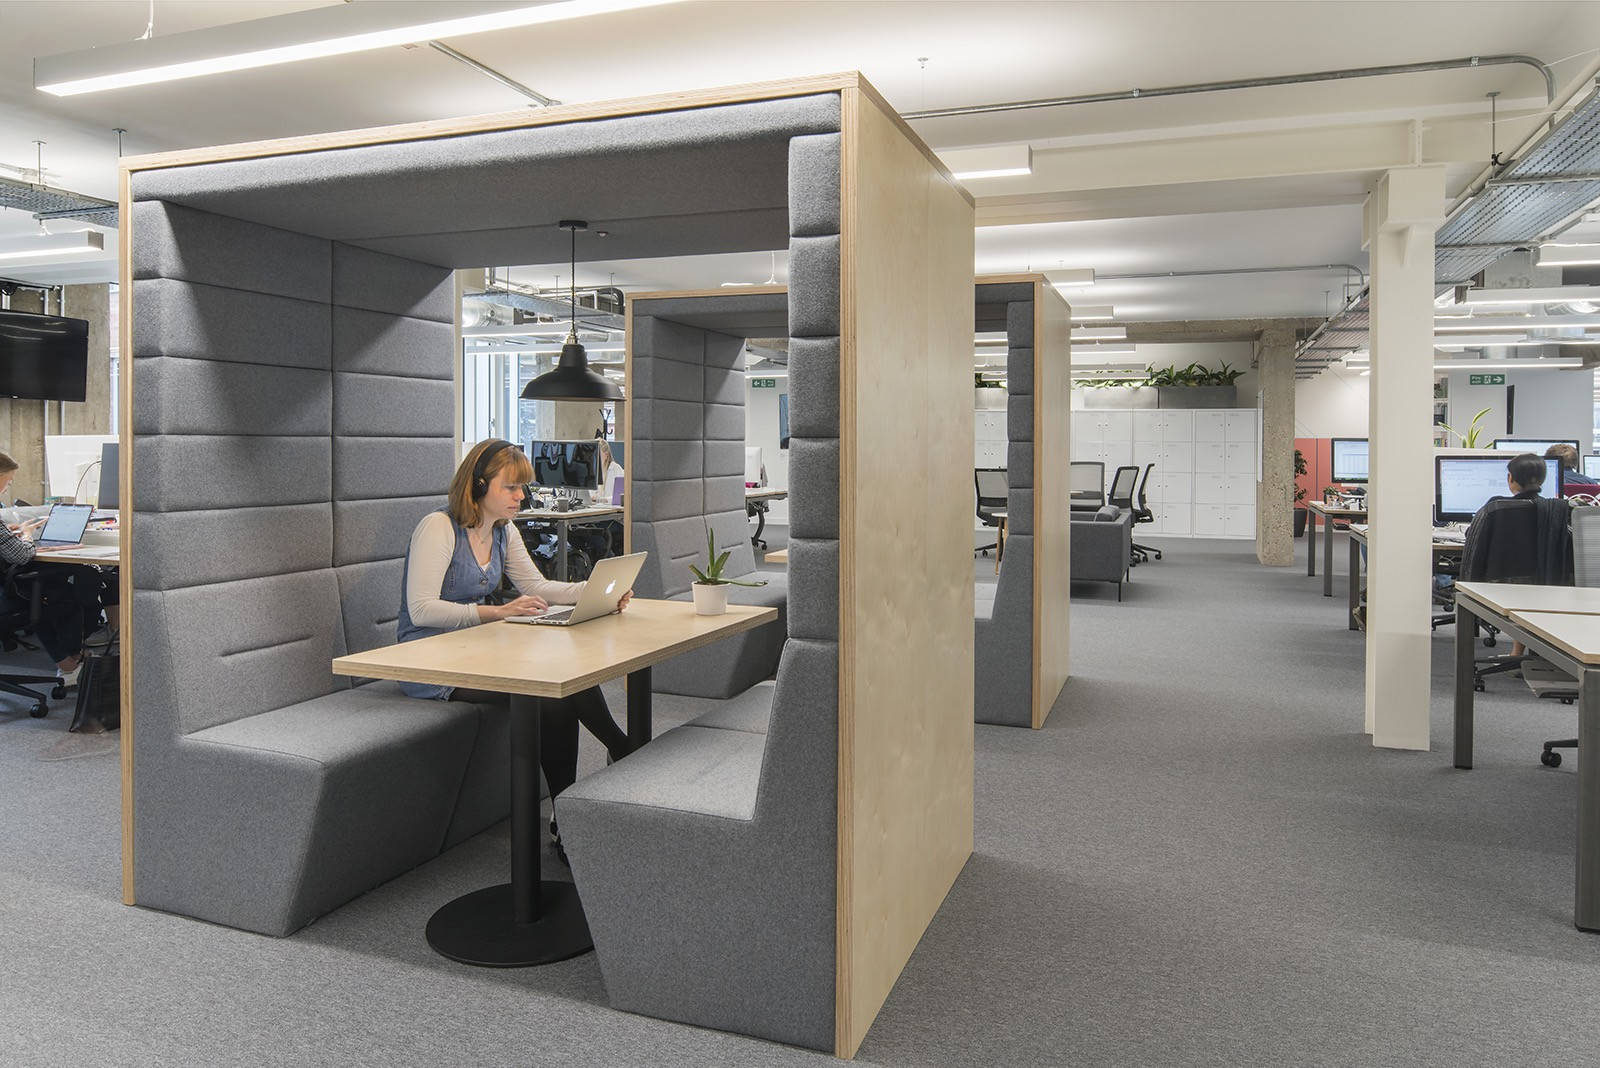 gocardless-london-office-6